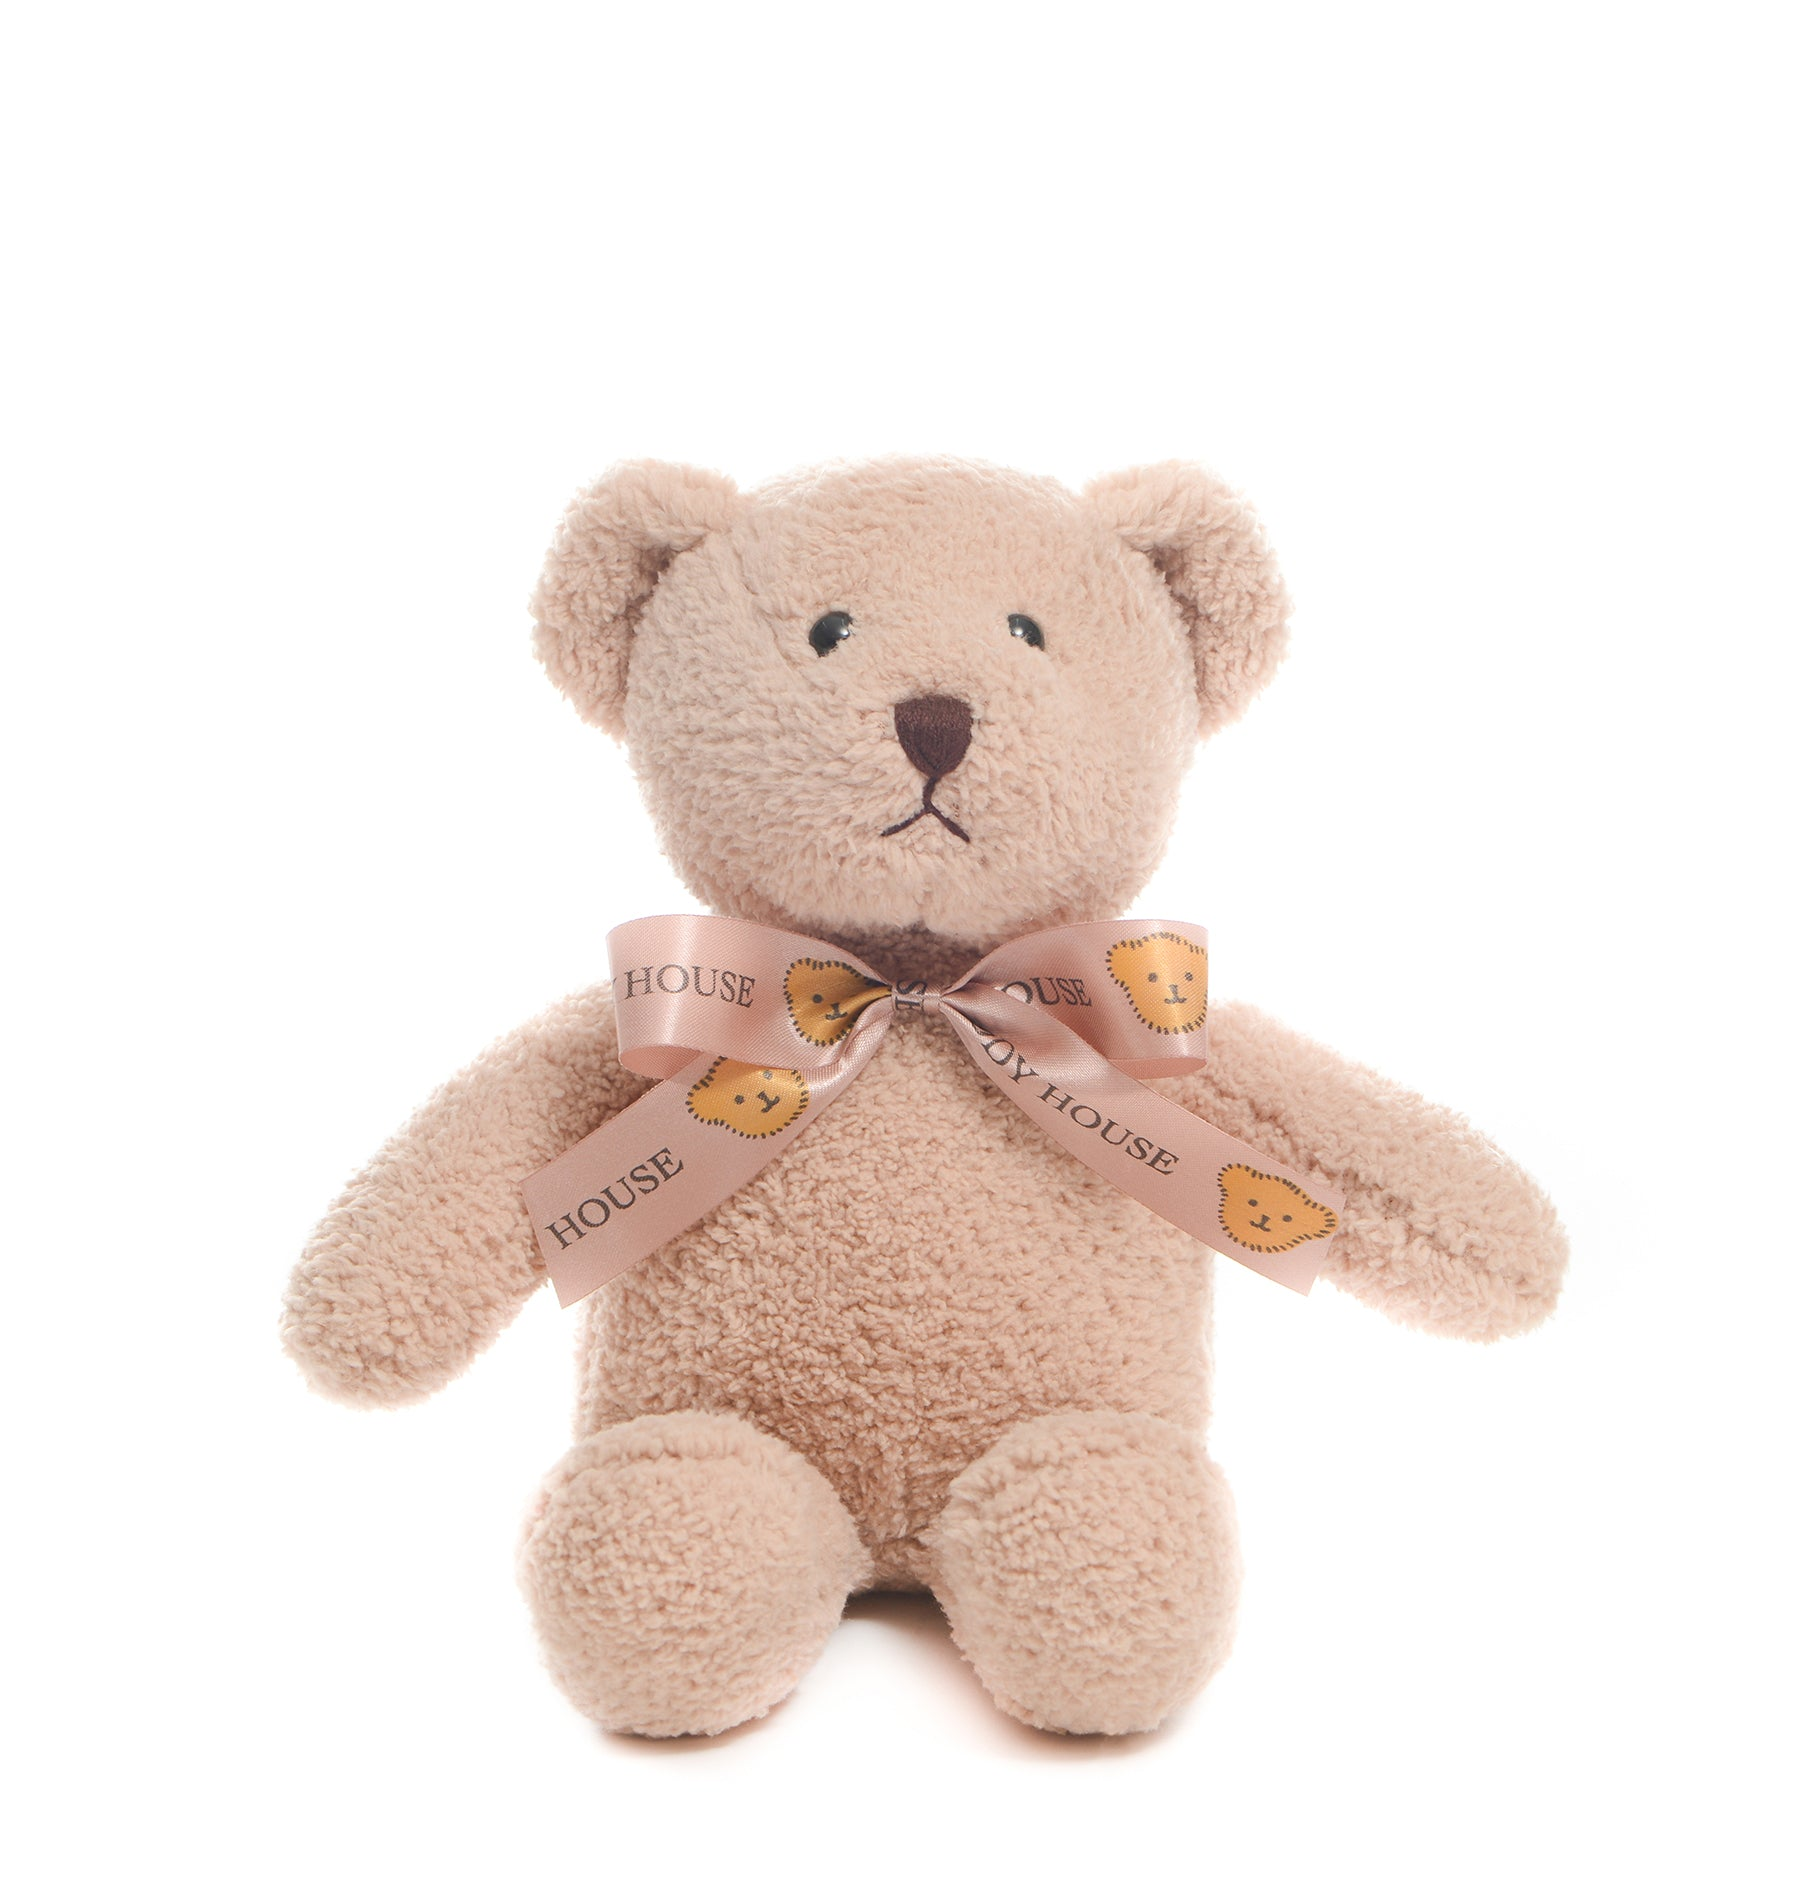 TEDDY HOUSE BONEKA TEDDY BEAR PP BROWN 08 INCHI